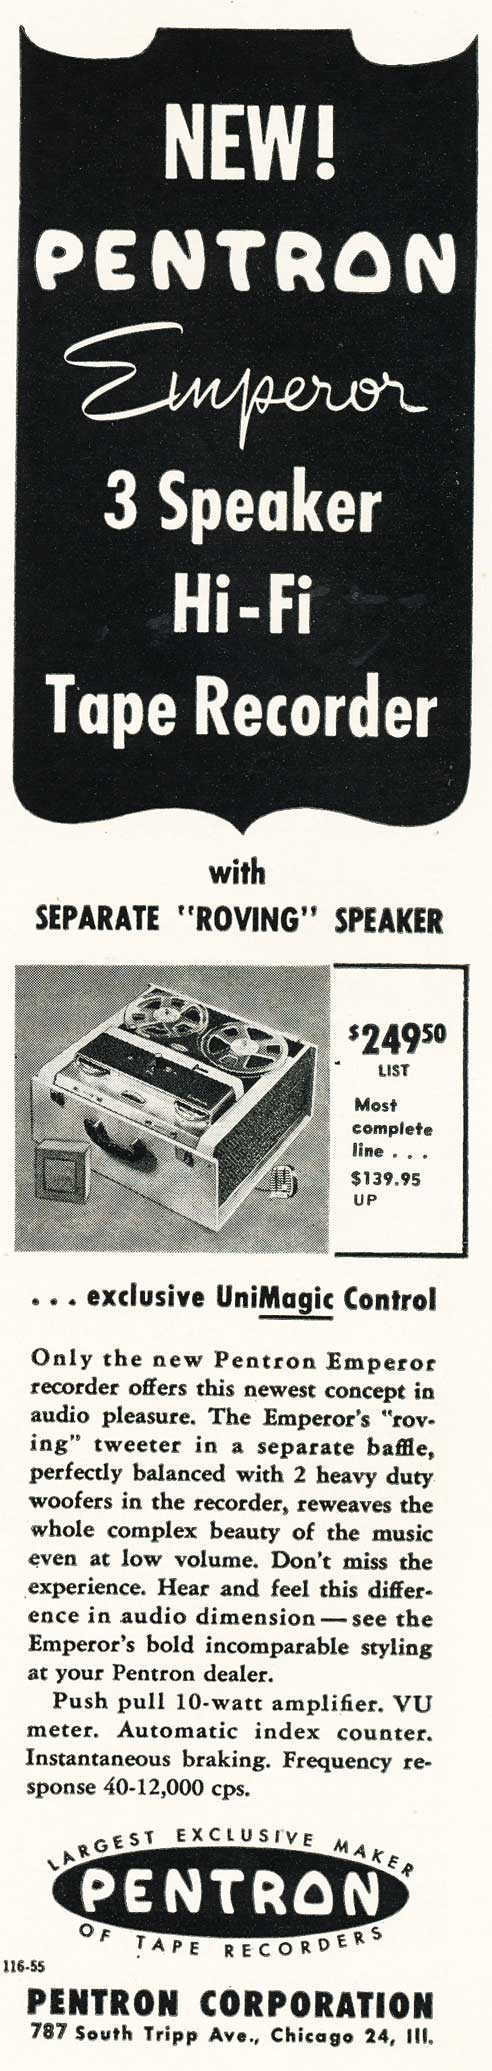 1956 Pentron tape recorder ad in   Reel2ReelTexas.com's vintage recording collection